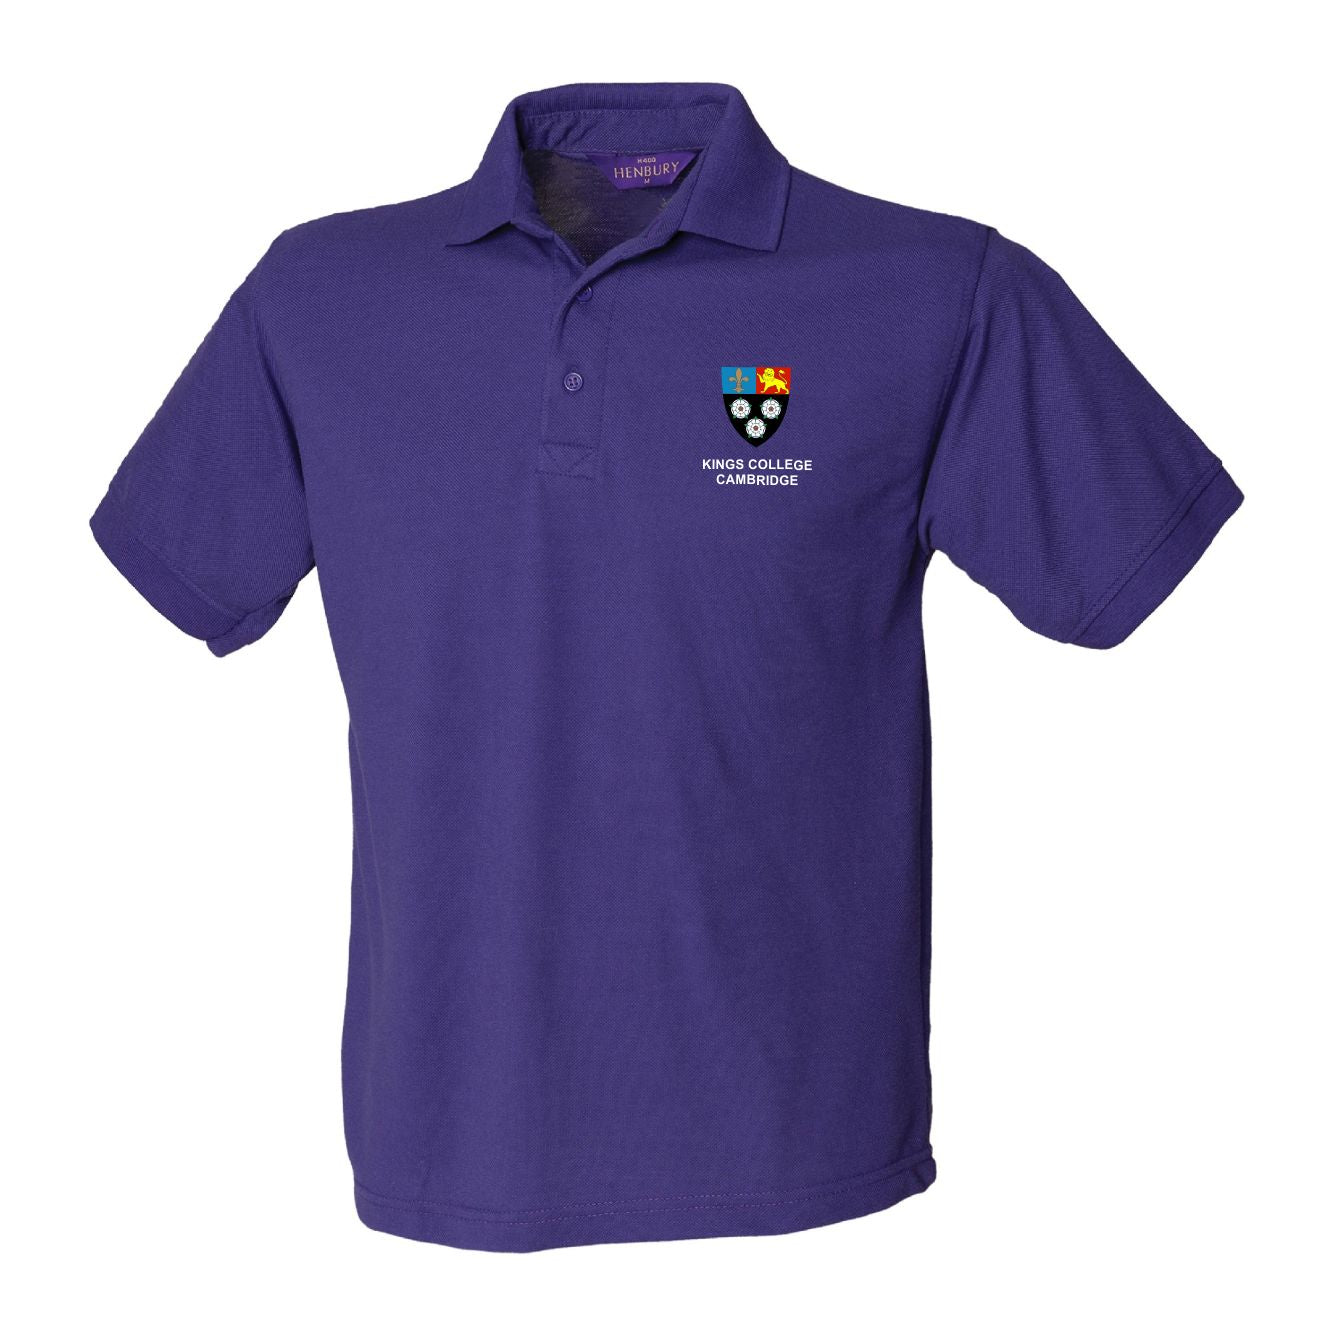 Kings College Cambridge Poloshirt Men's.